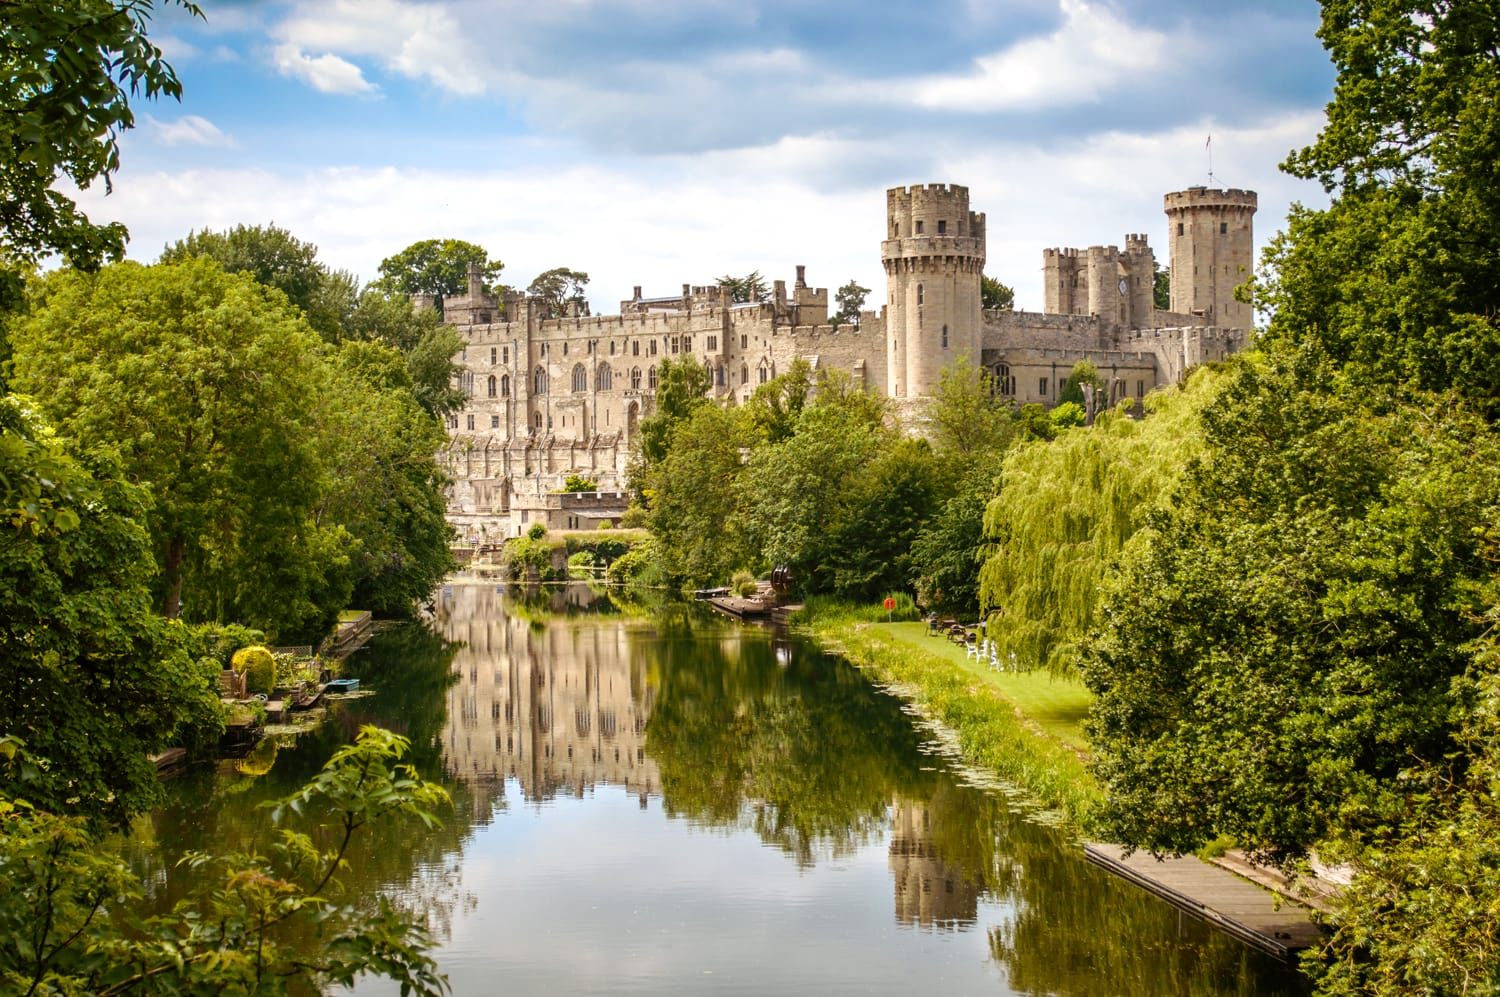 "castles in england essay Top 10 fascinating facts about castles ryan thomas may 27, 2012 share 260 stumble 80 tweet pin 122 +1 5 share 8  fact: there are 1500 castle sites in england this is according to the castellarium anglicanum which is supposed to be the ultimate authority on castles in england and wales note the intentional use of the term ""site."